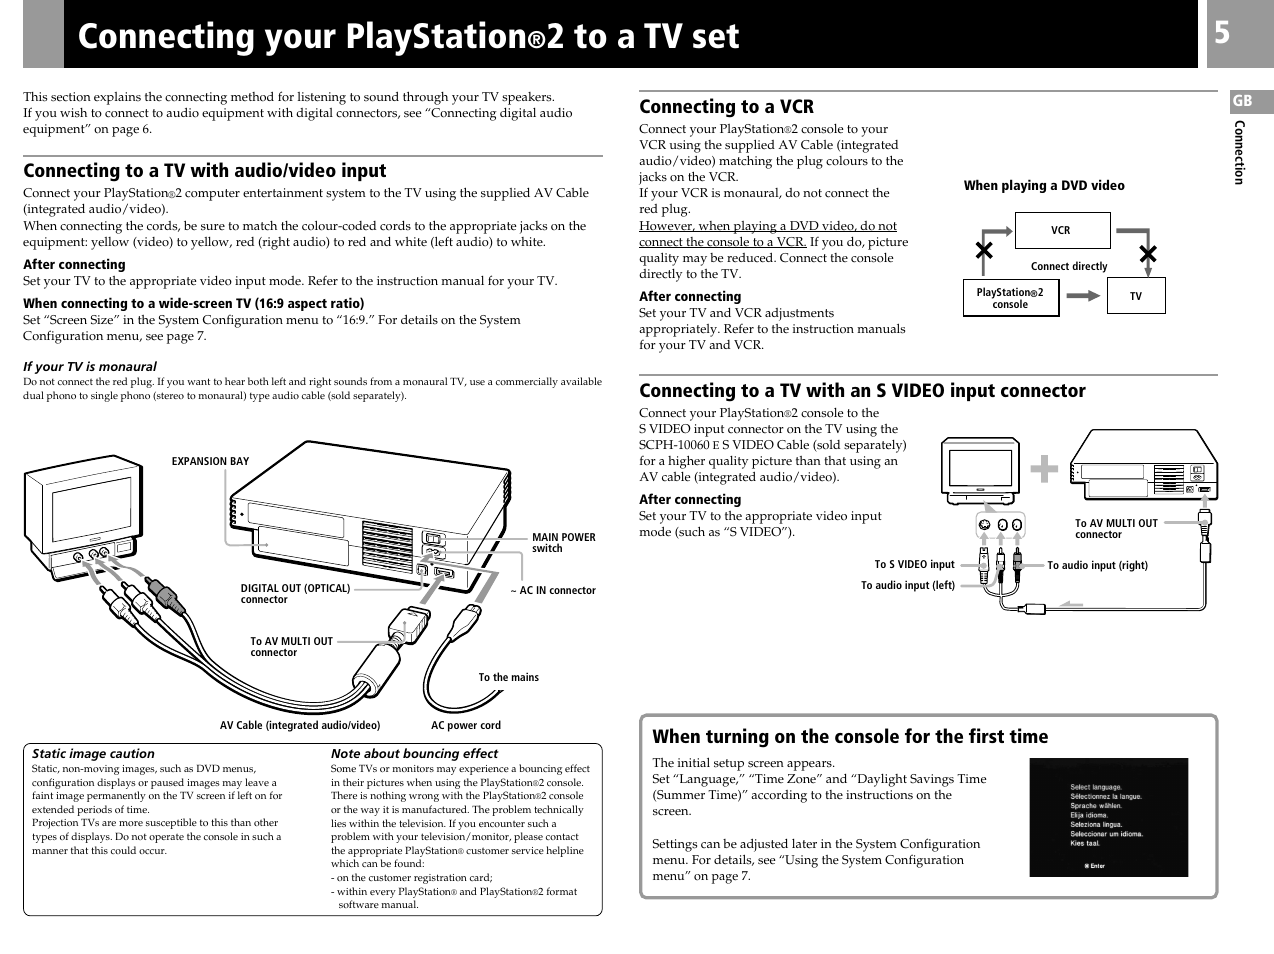 ps2 manual sony user guide manual that easy to read u2022 rh gatewaypartners co Sony Operating Manuals ICD-UX523 sony ps2 instruction manual pdf